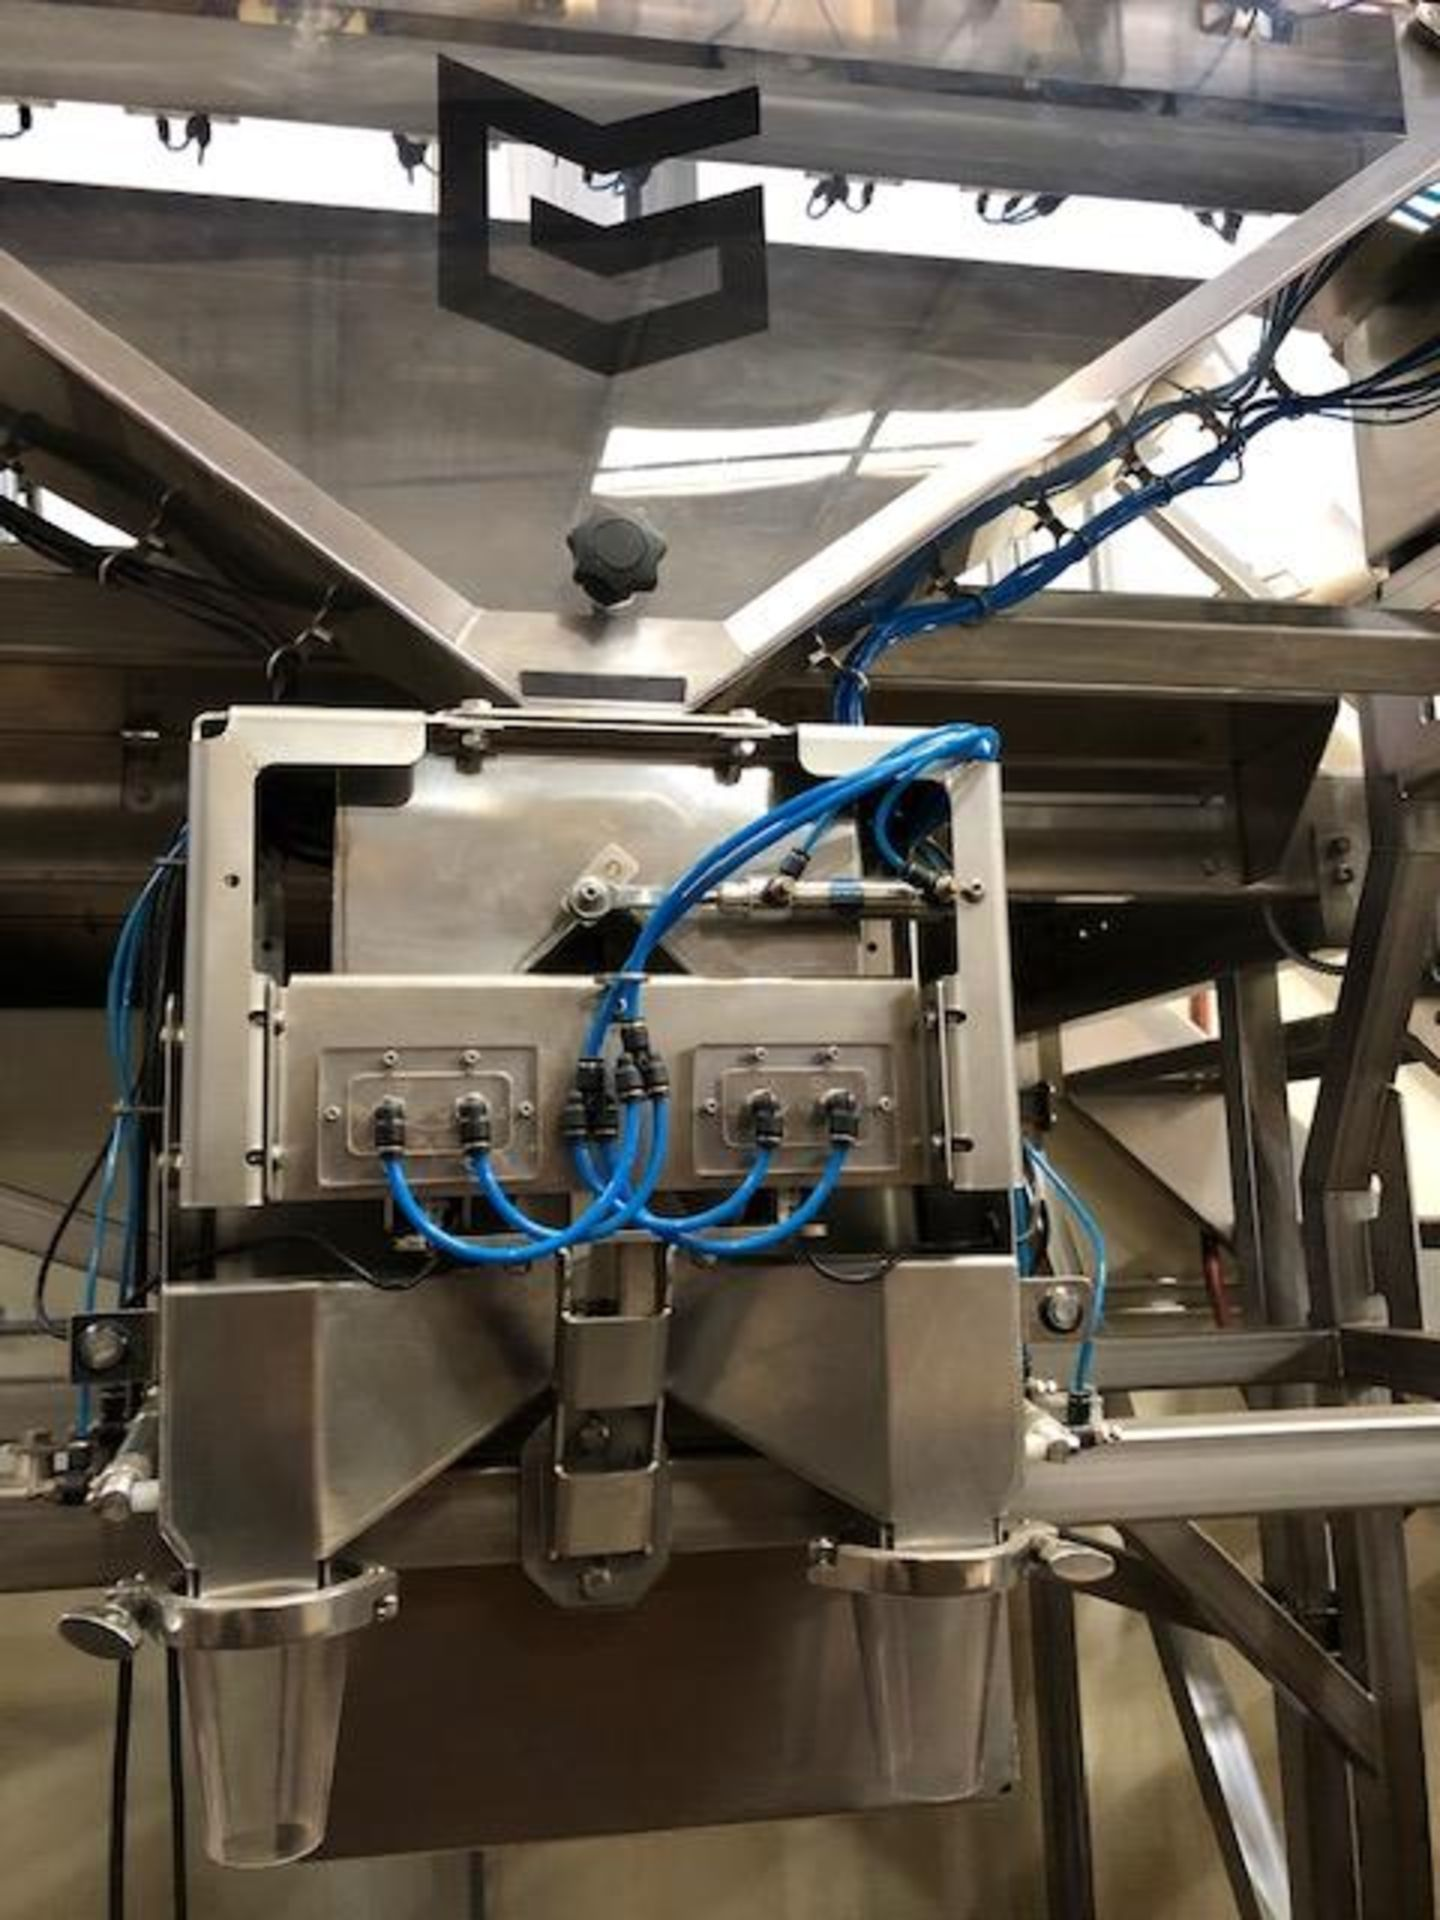 Used-Green Vault Systems Precision Batcher for Batching & Packaging Flower w/ Air Compressor - Image 2 of 23